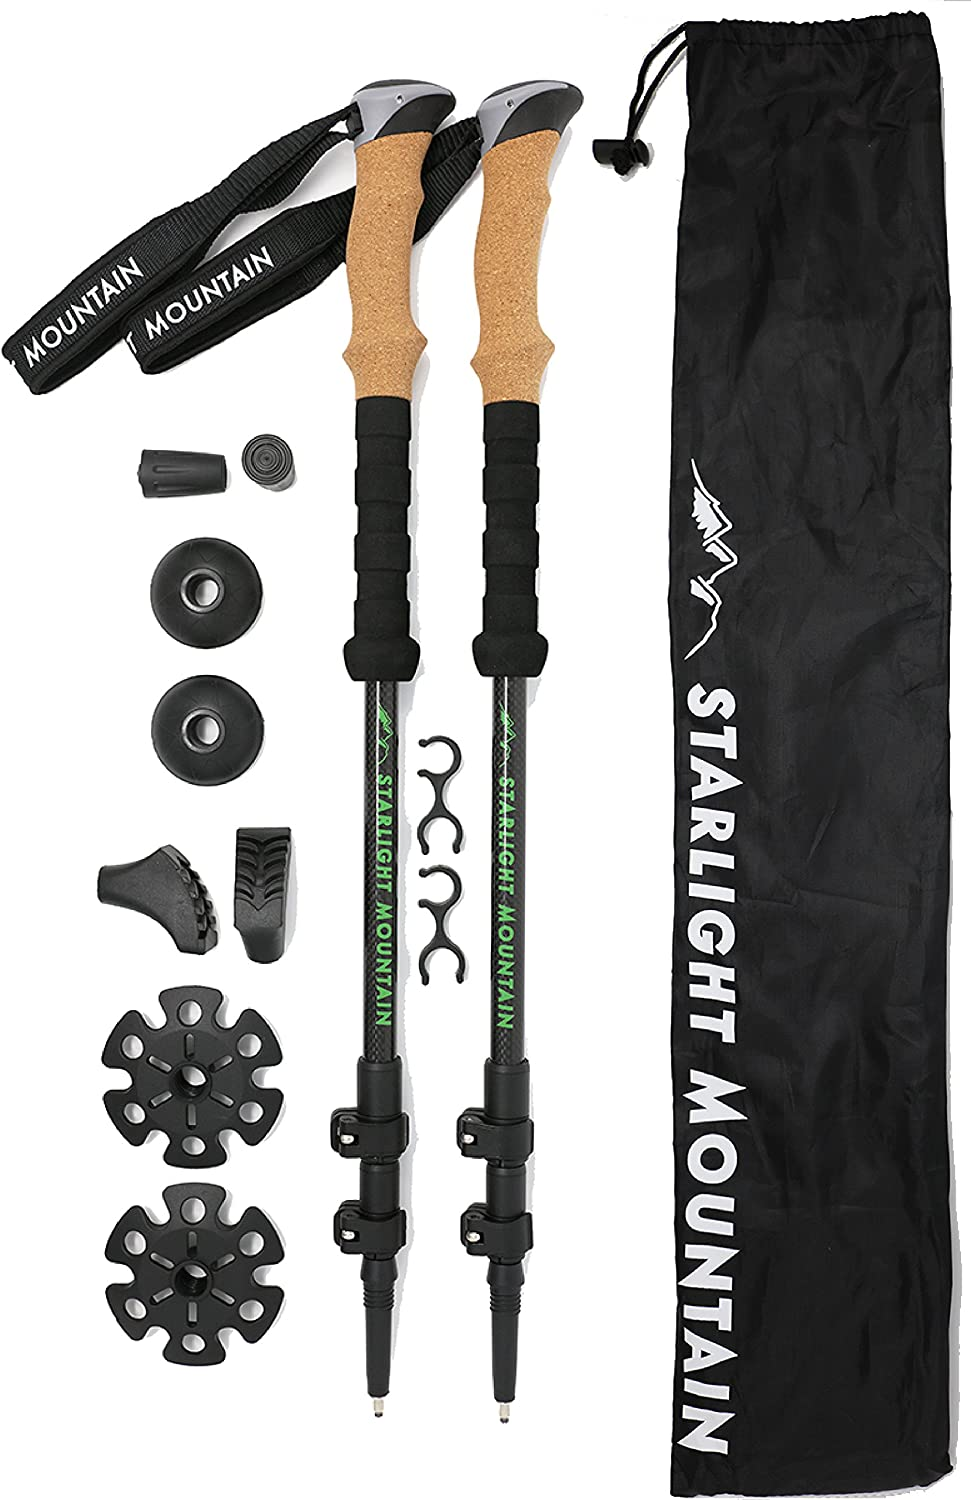 Starlight Mountain Outfitters Trekking Poles Premium Lightweight Carbon Fiber Collapsible, Adjustable with Quick Flip Locks, Cork Grips, Padded Wrist Straps Tungsten Tips